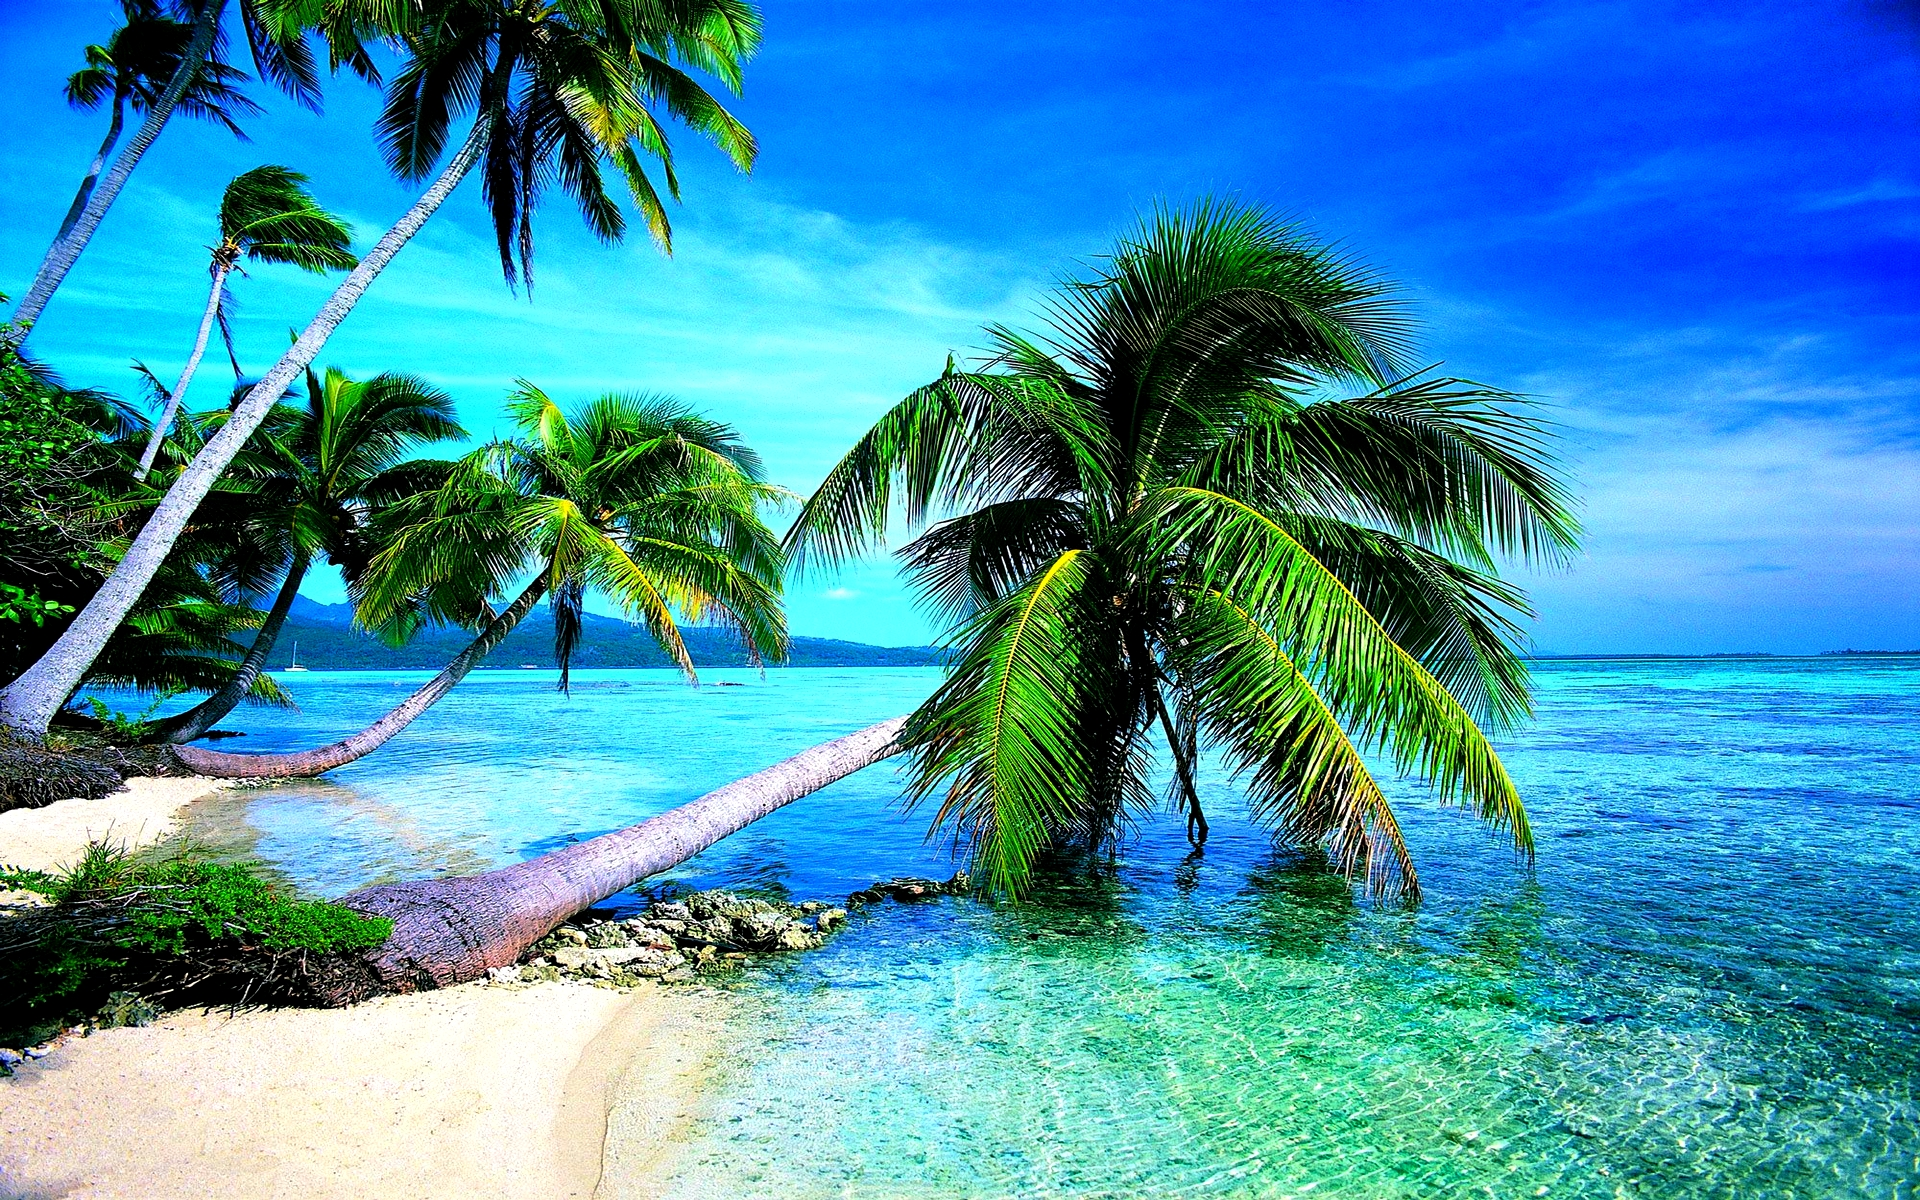 Tropical Beach Hd Image Wallpapers 1920x1200